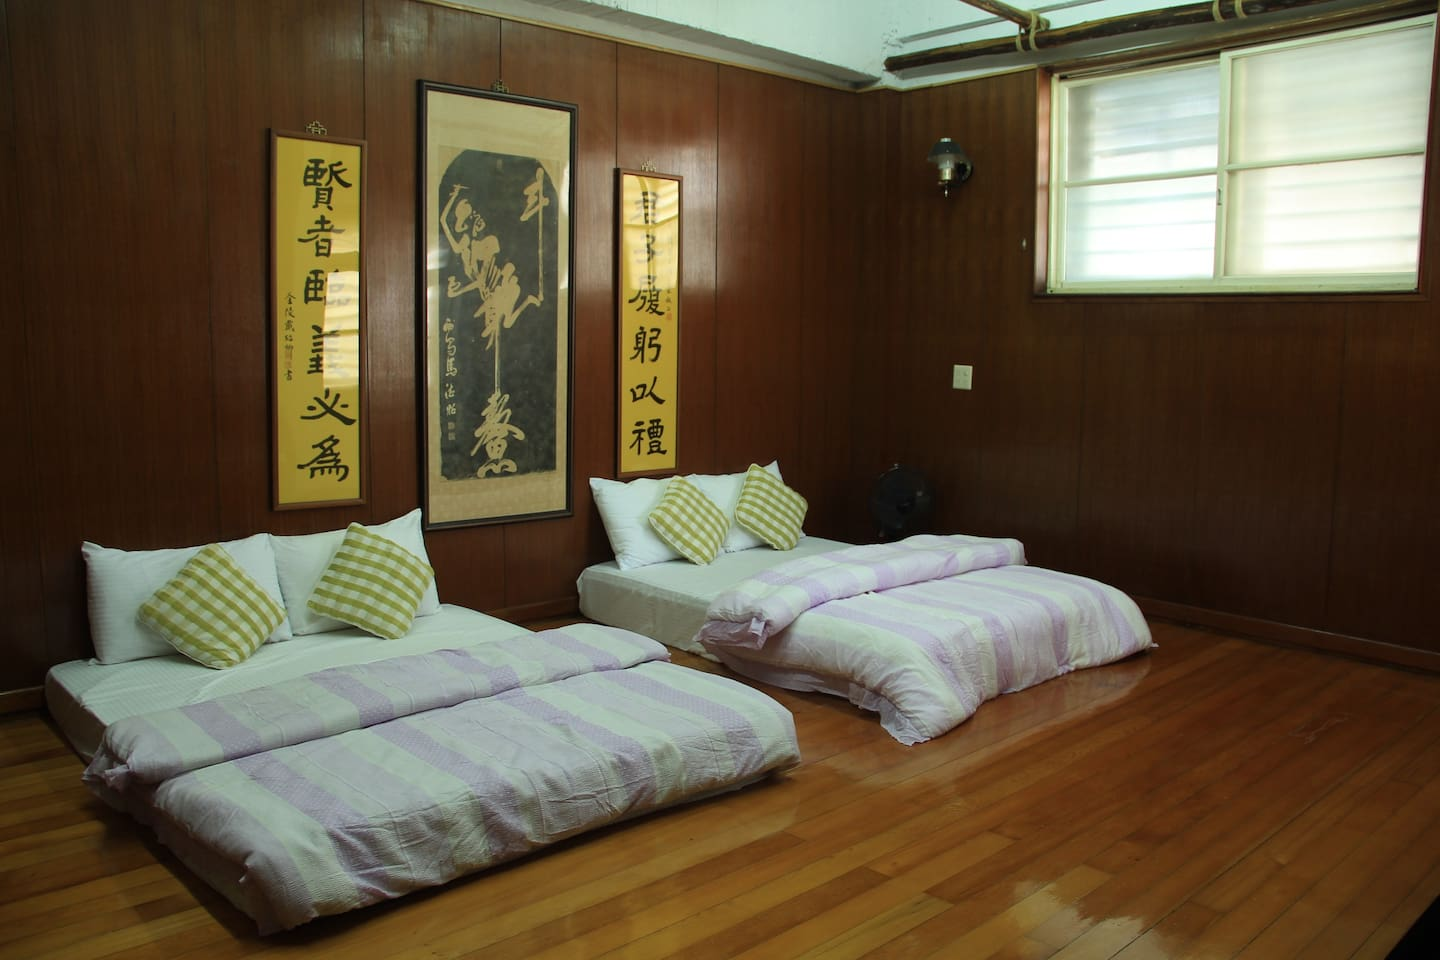 Japanese style room with two double beds